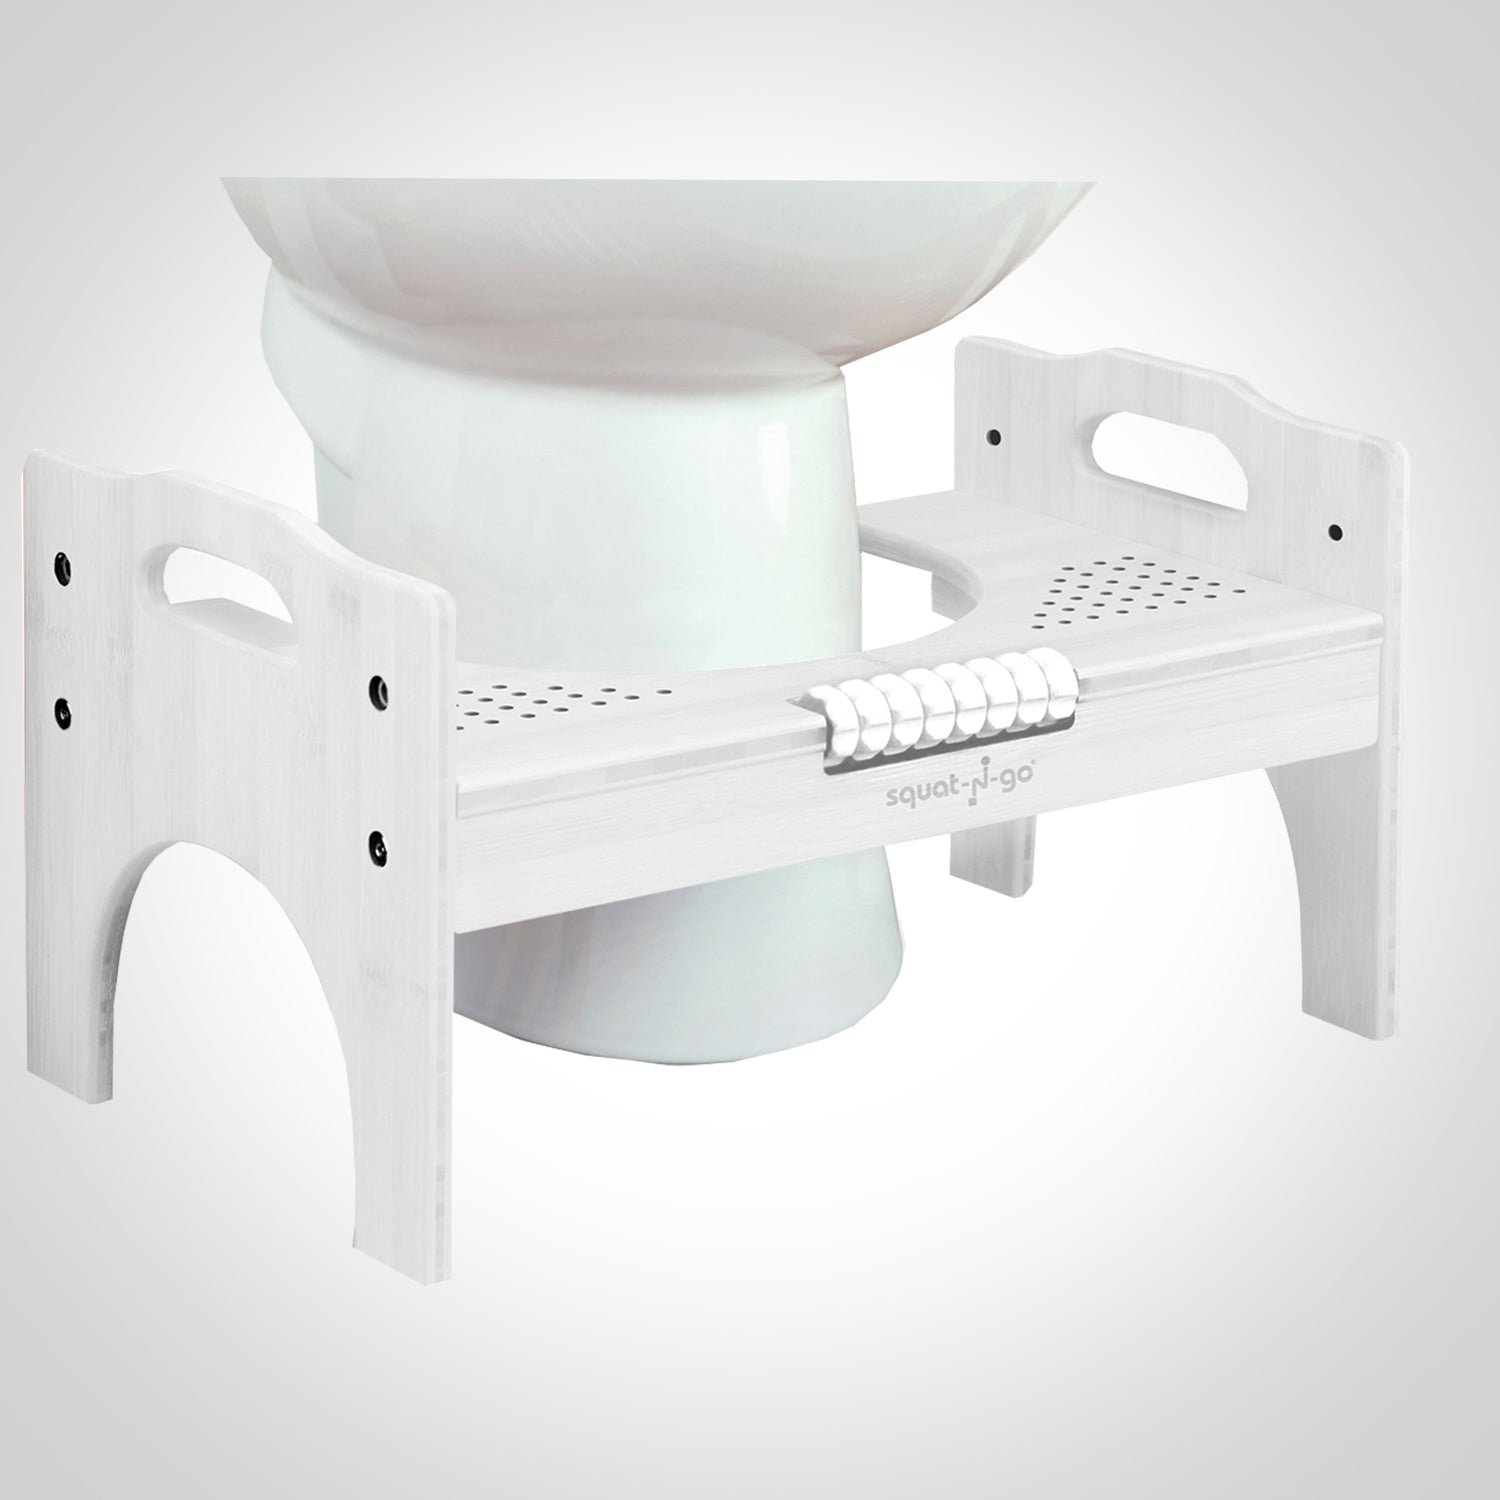 Enjoyable Bamboo Adjustable Toilet Stool W Foot Roller Squat N Go Gmtry Best Dining Table And Chair Ideas Images Gmtryco